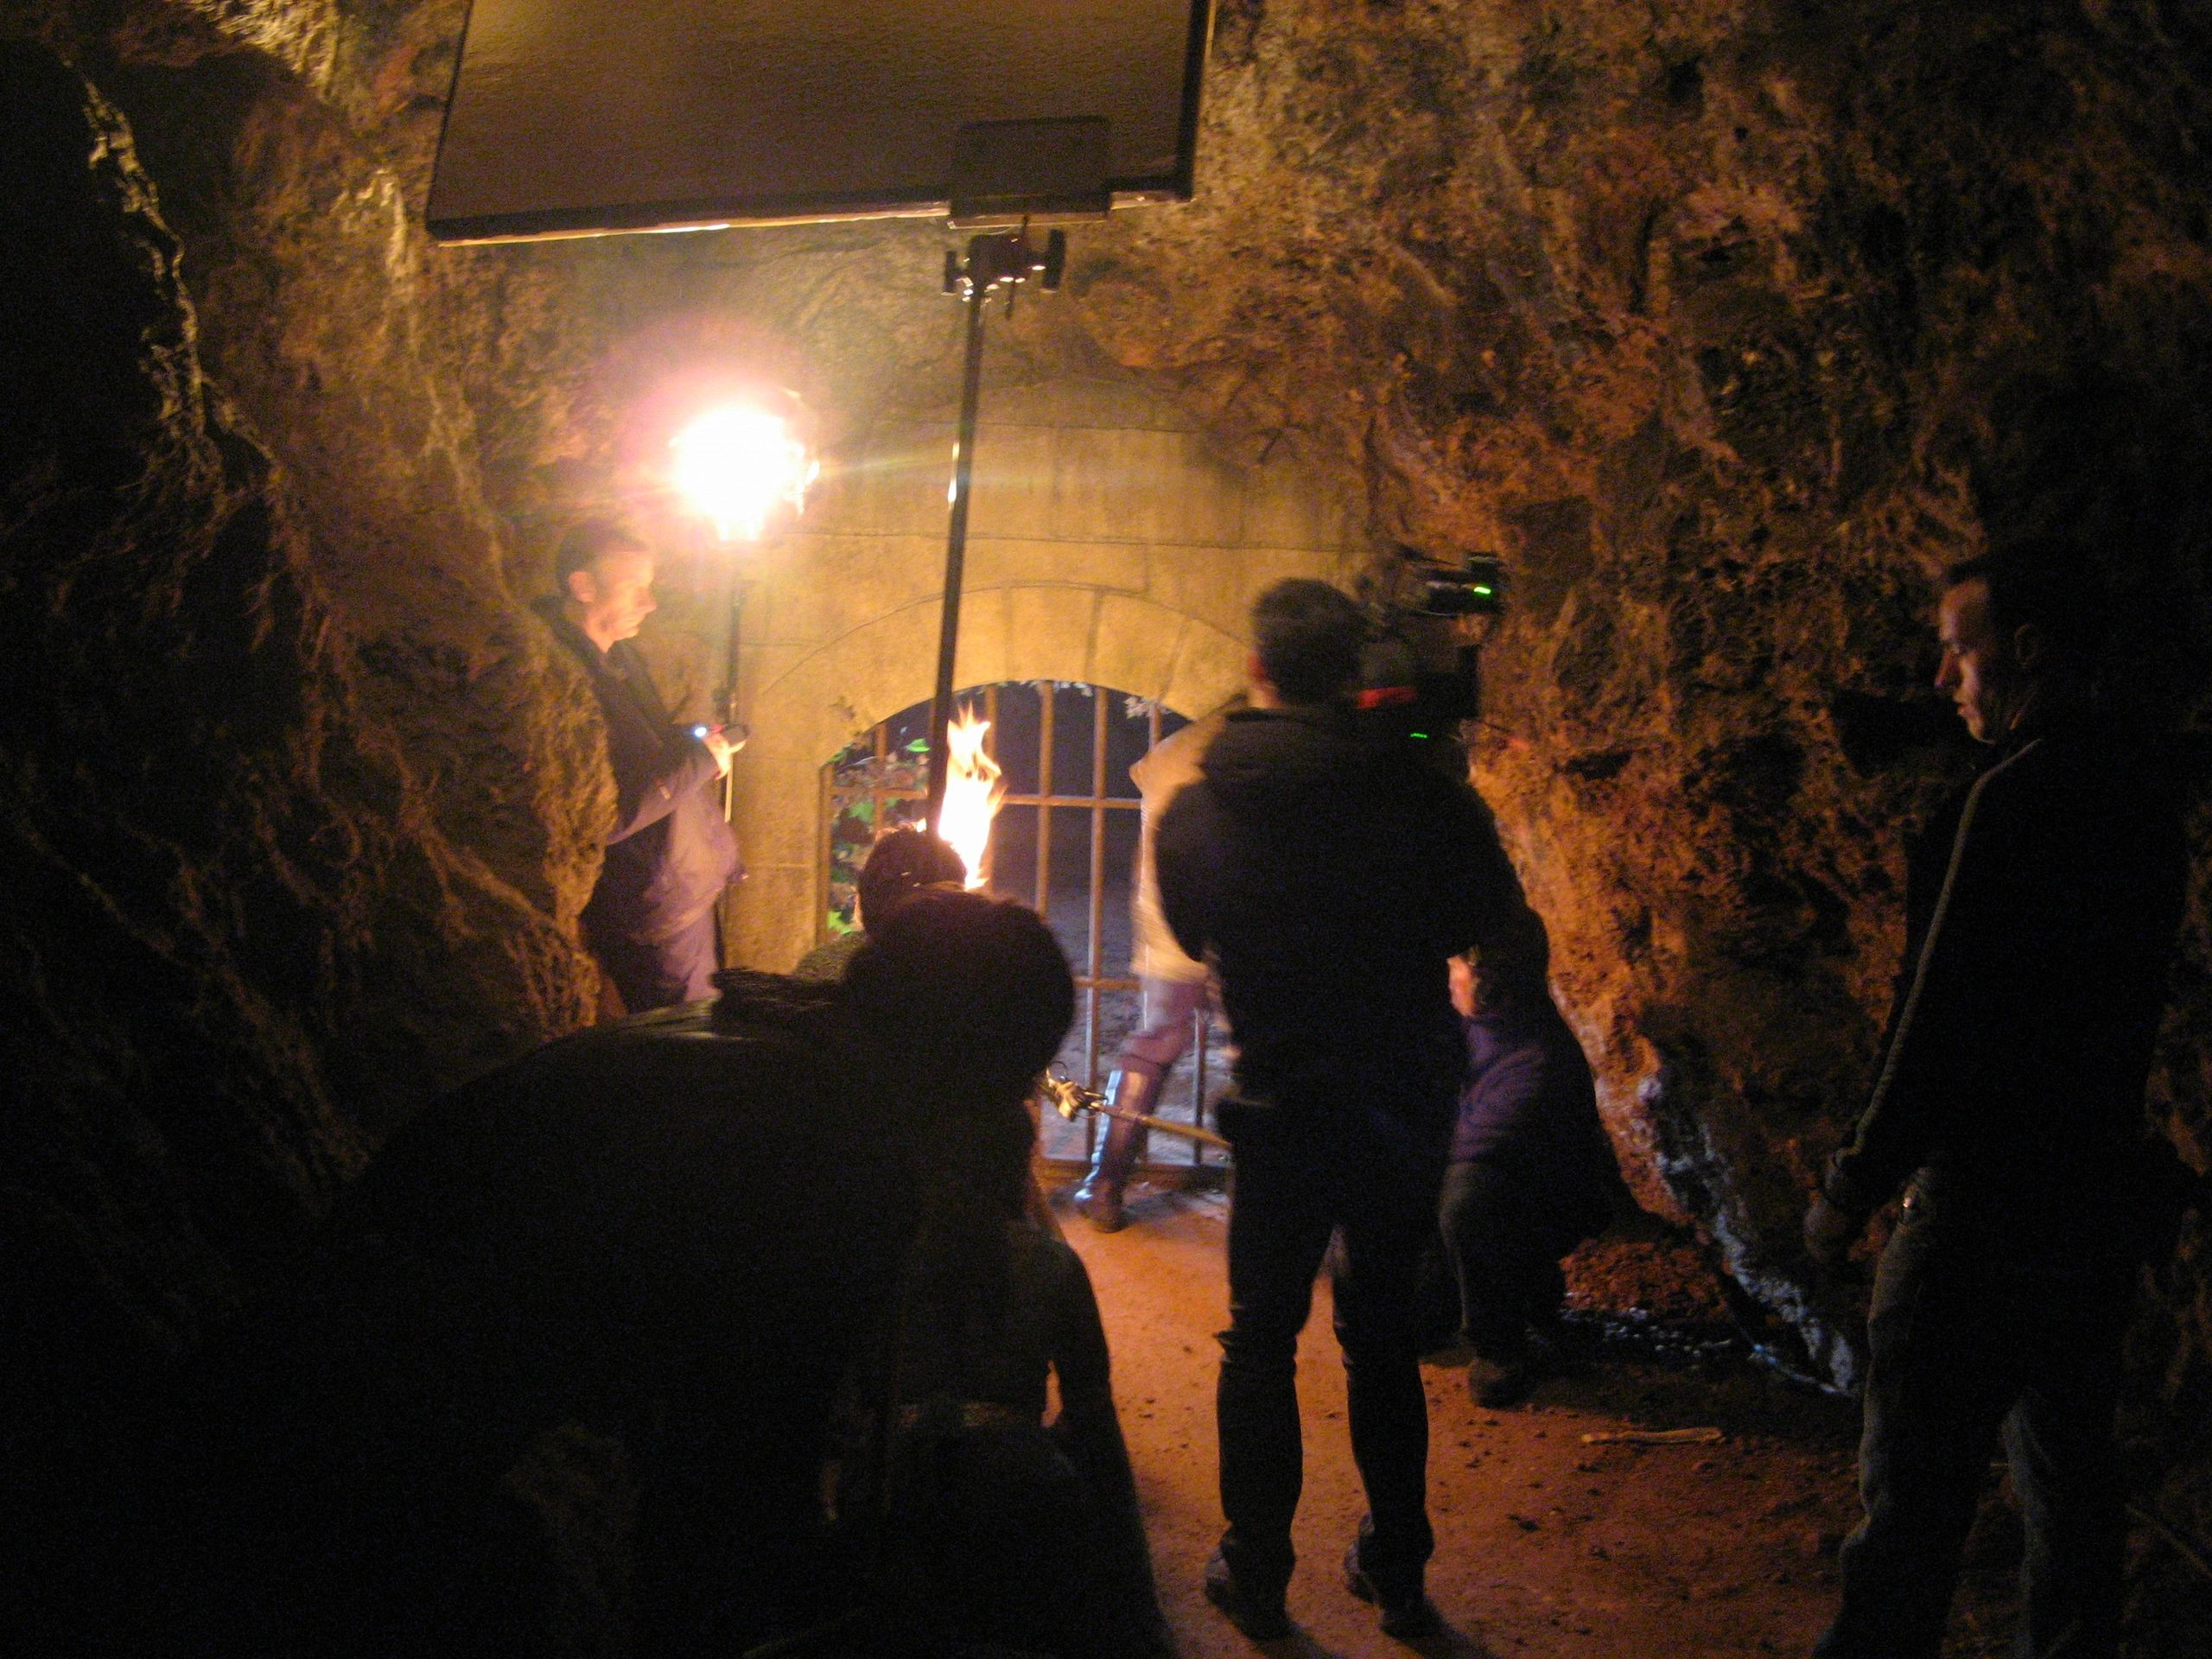 Filming underground with a film crew